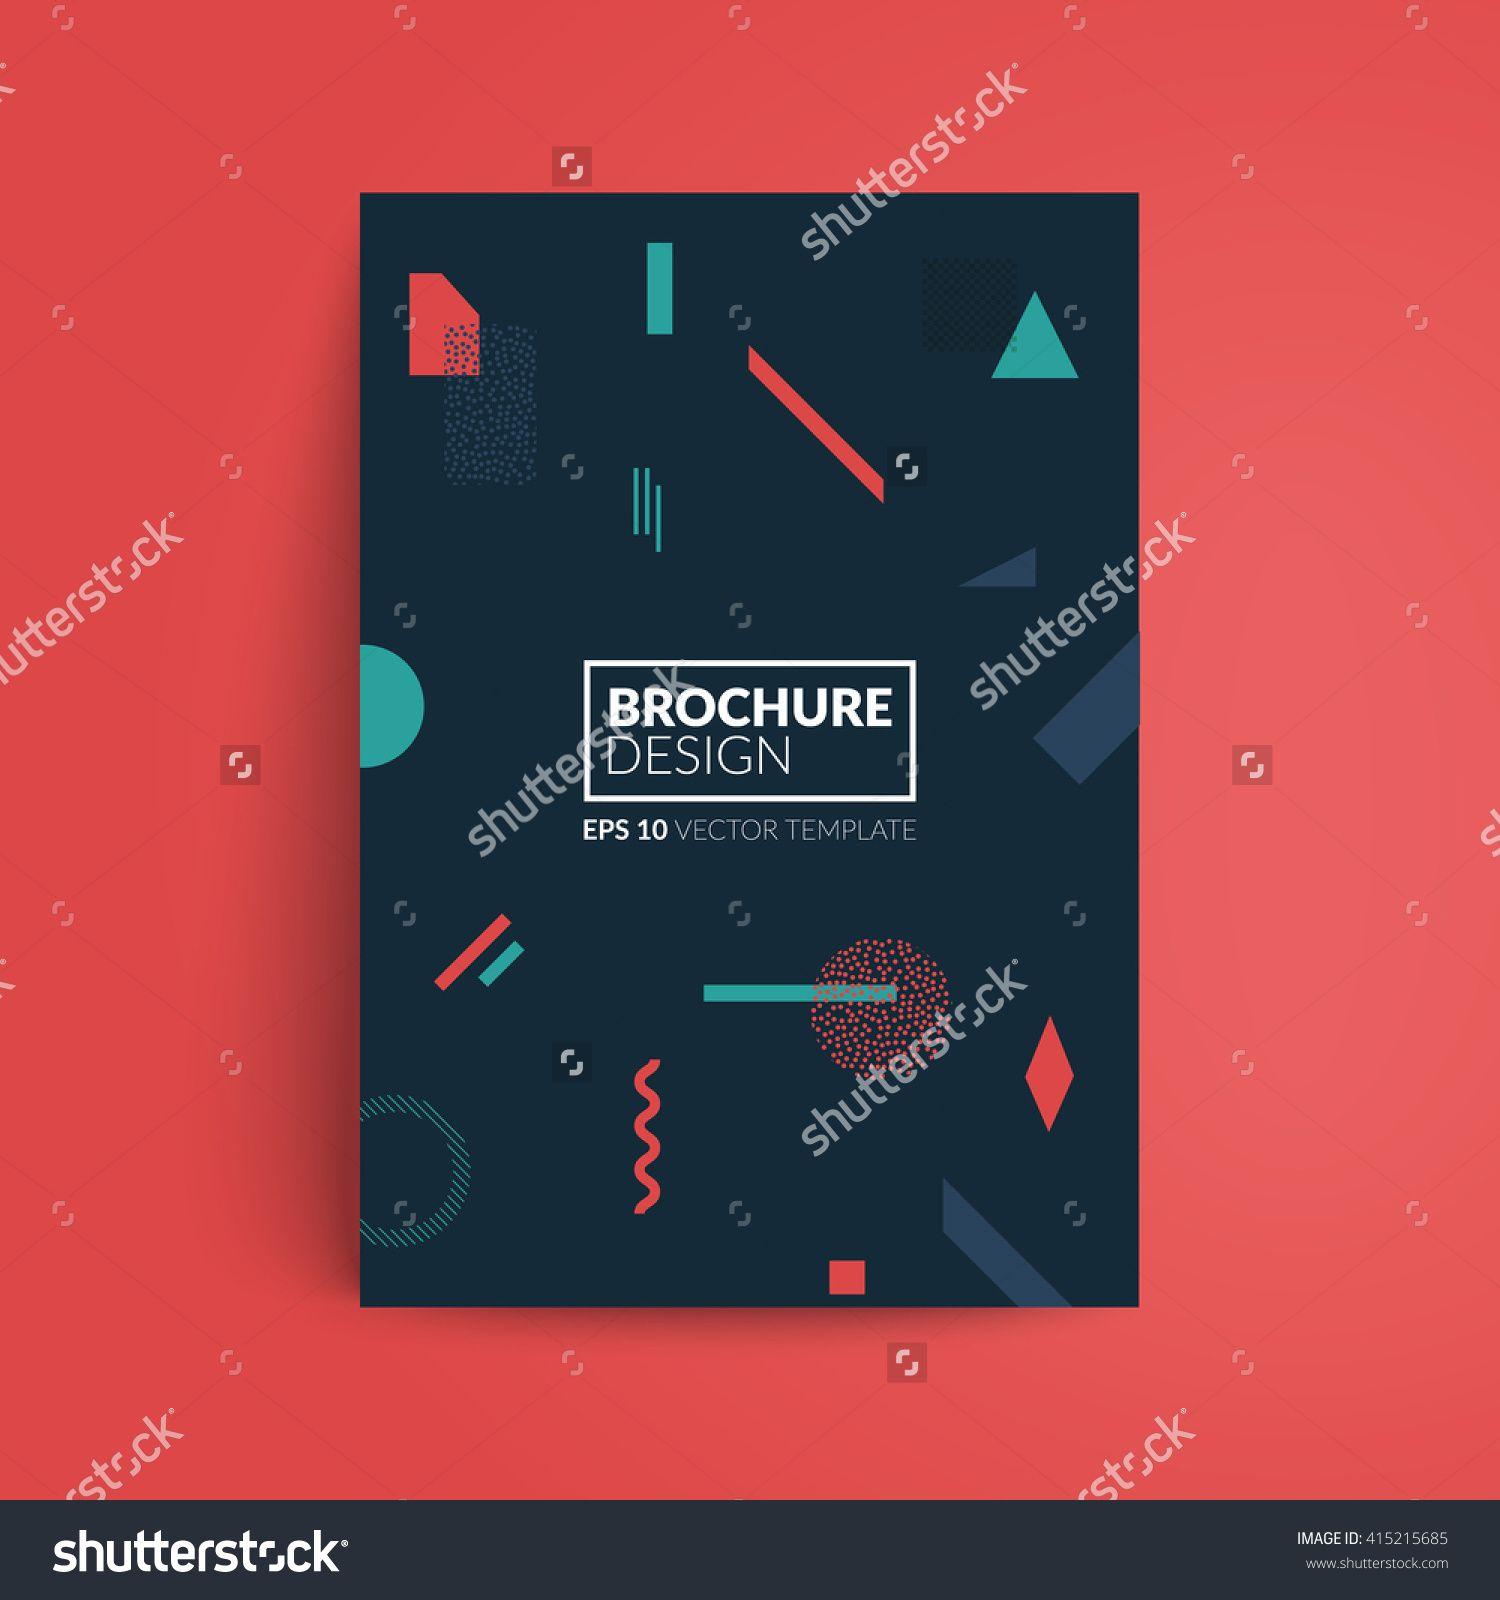 Geometric Cover Design A Format Template For BrochurePoster